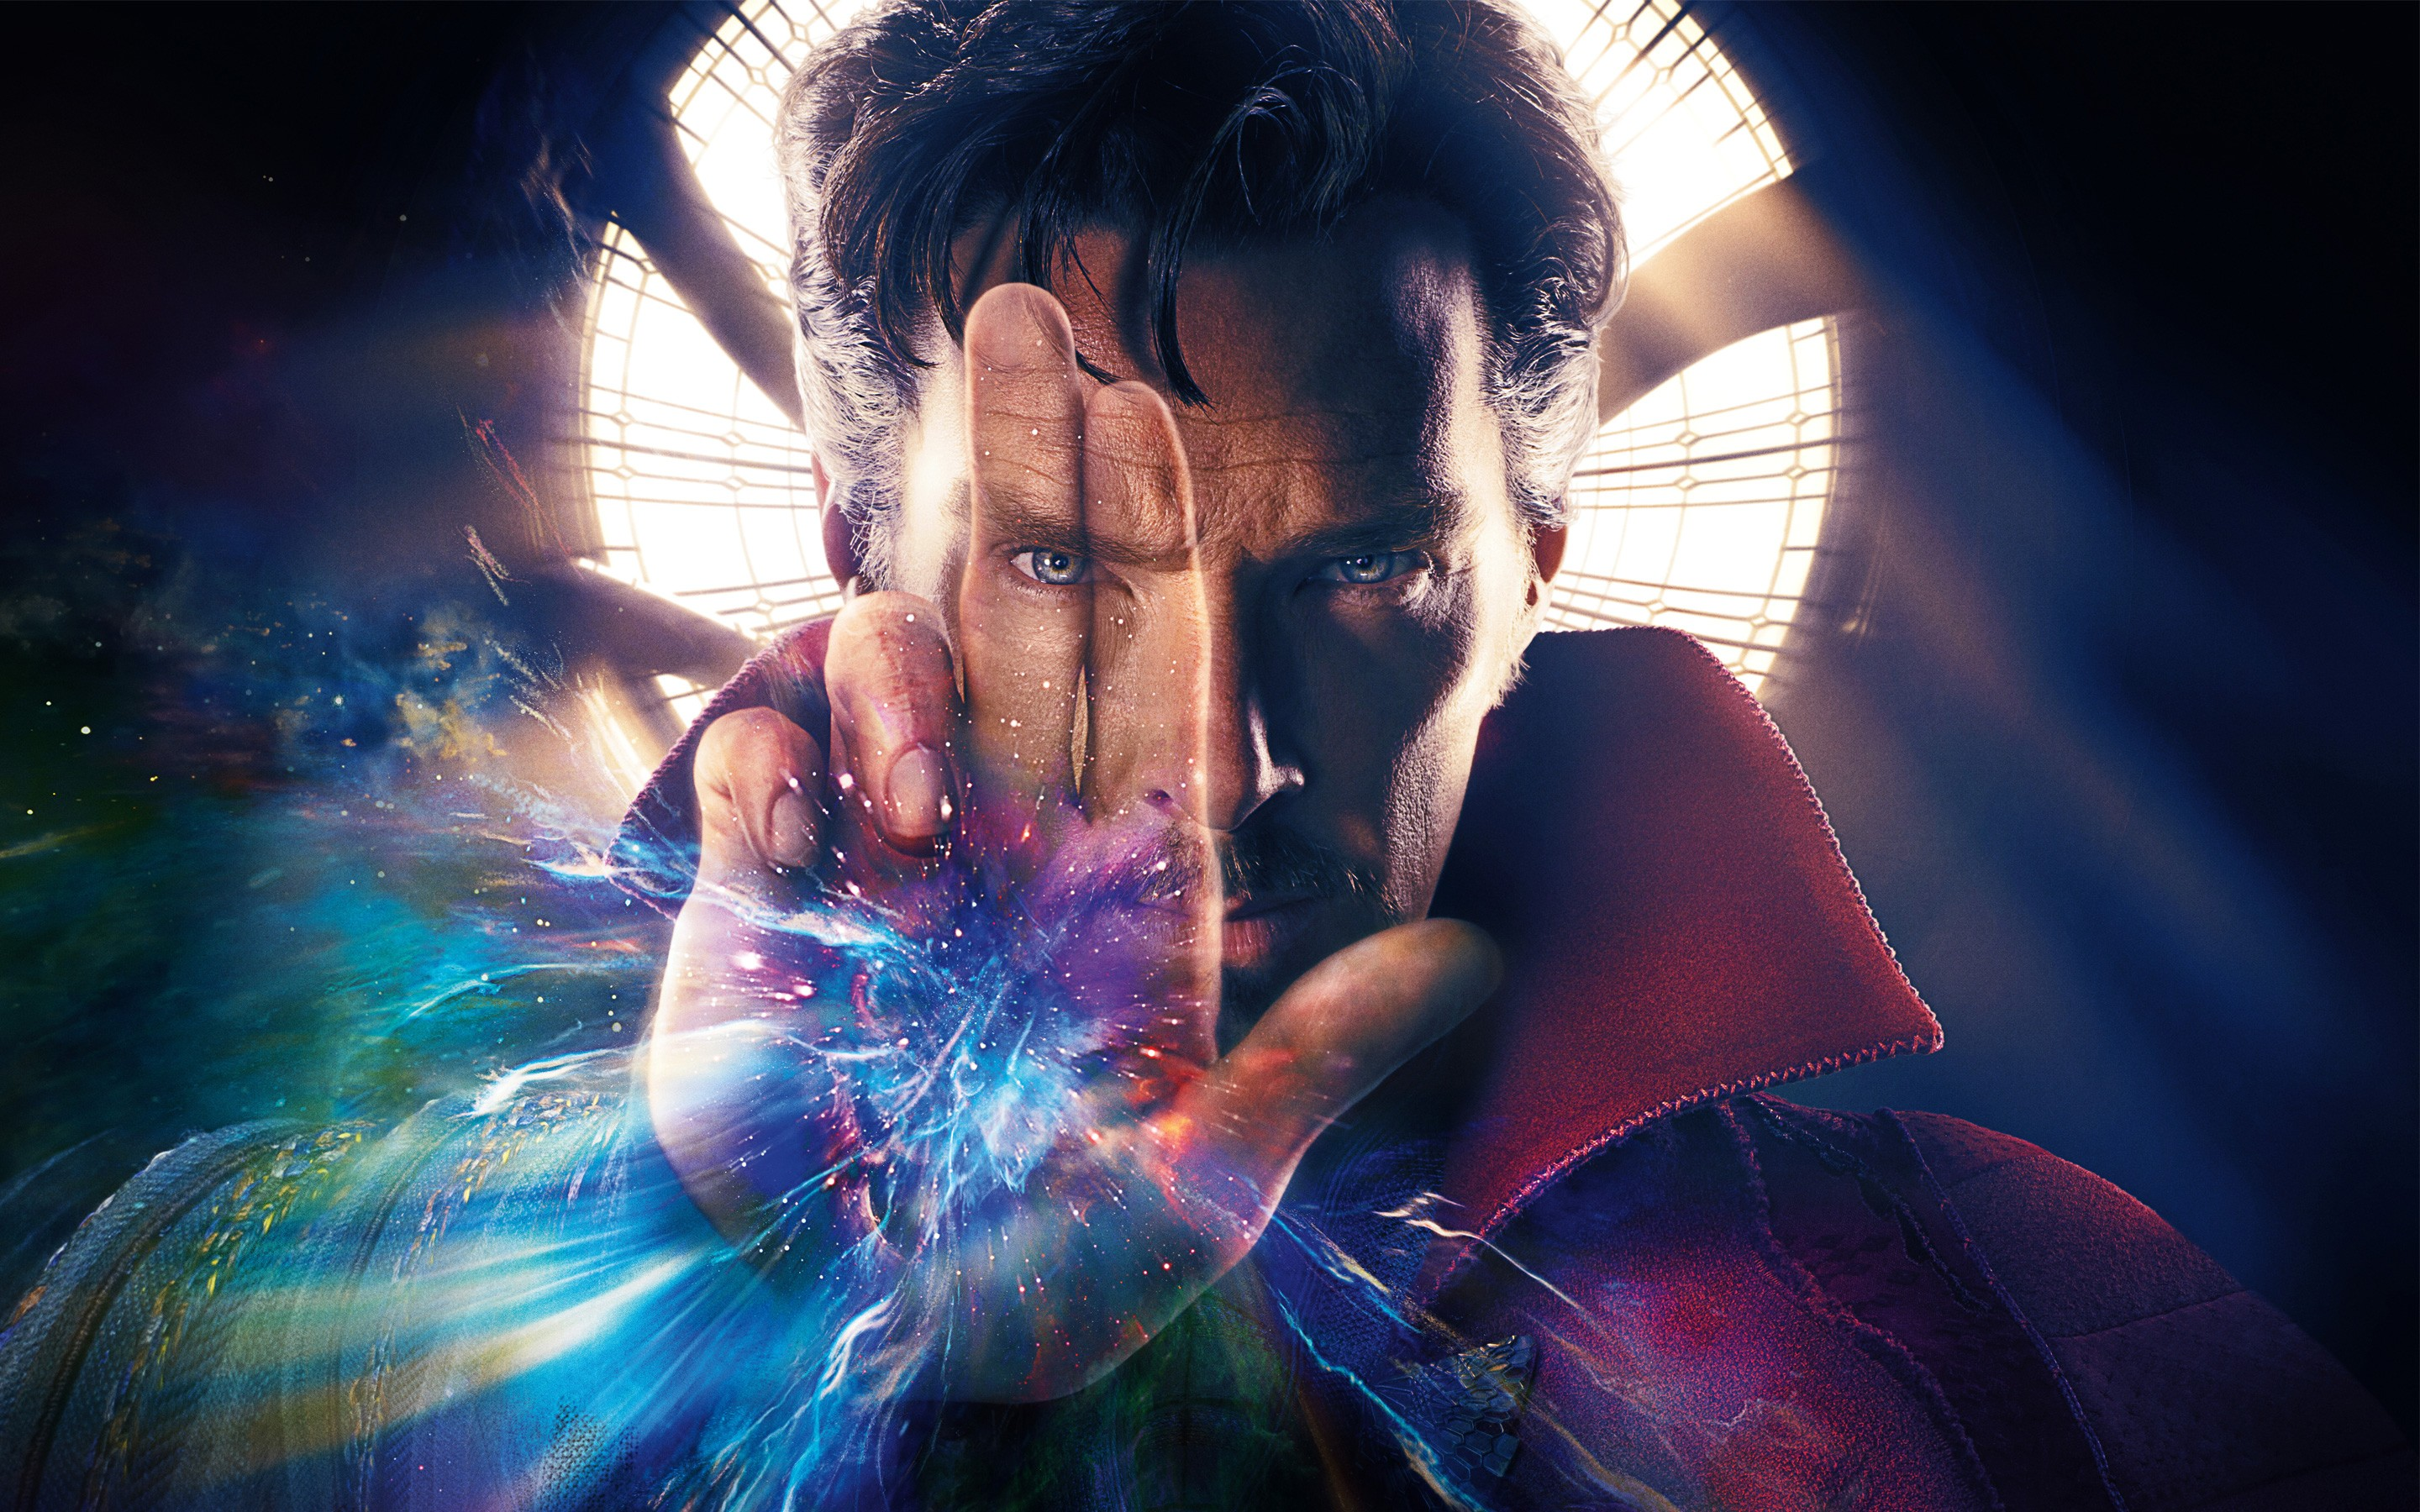 Doctor Strange Wallpaper ① Download Free Awesome Wallpapers For